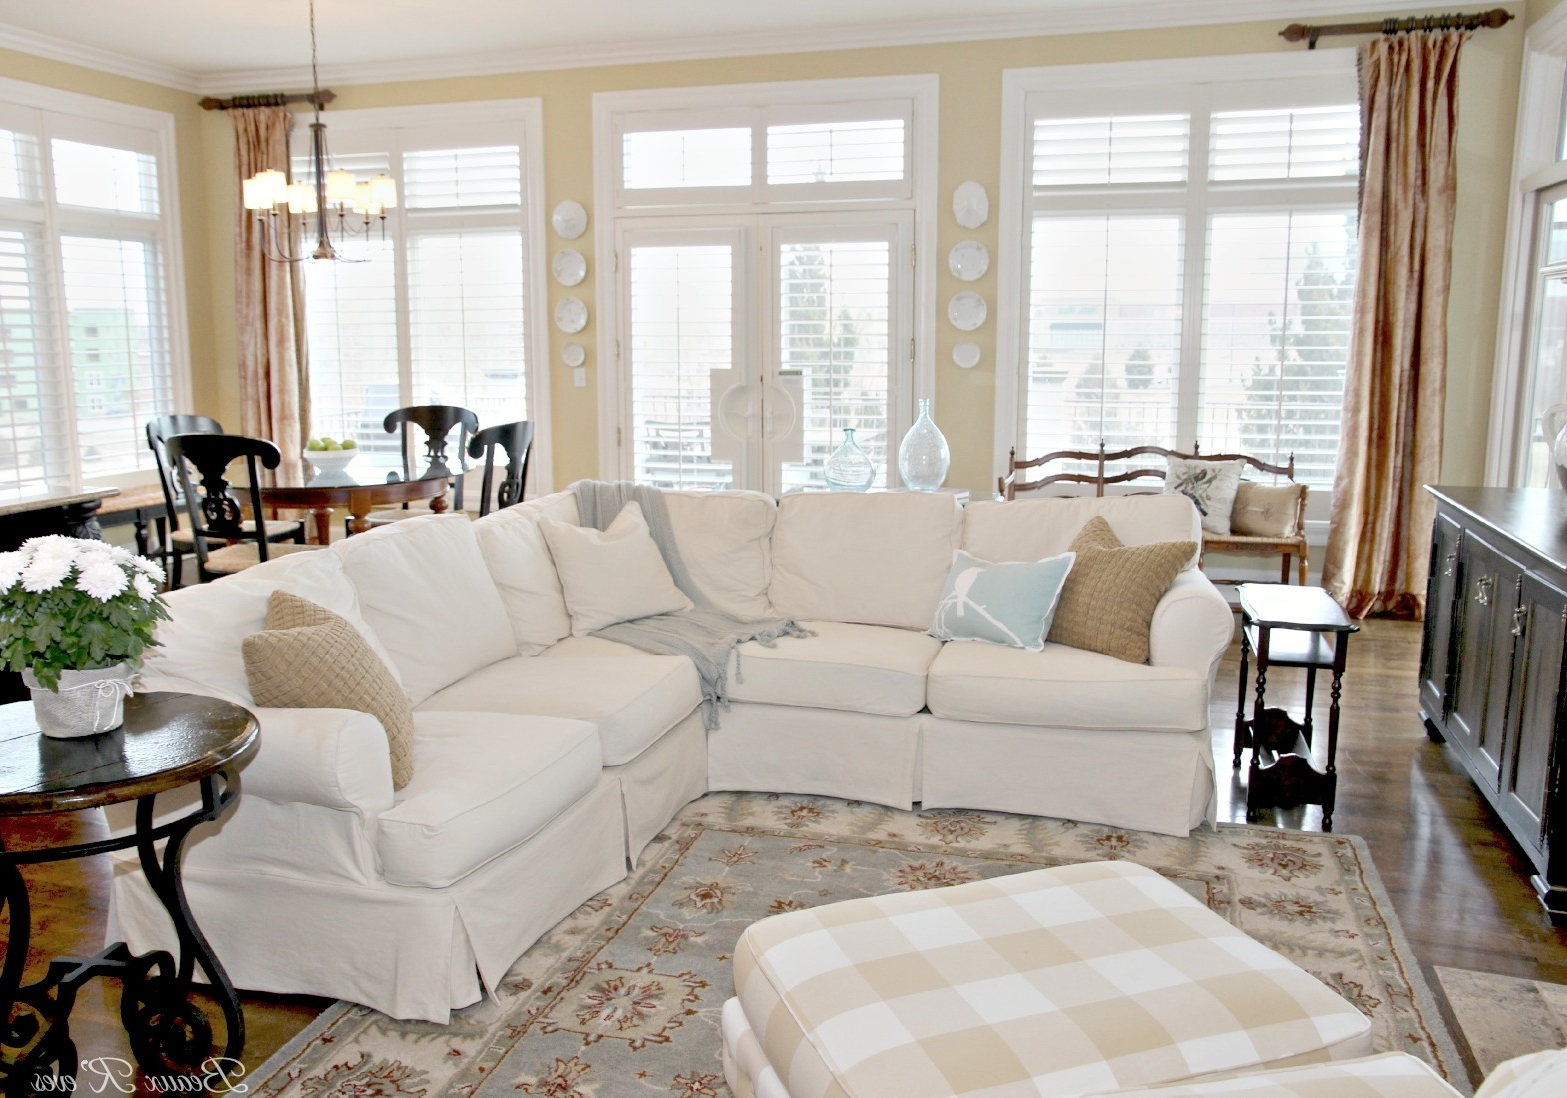 Well Known Slipcover Sectional Sofas With Chaise Within Beaux R'eves: Pottery Barn Knock Off Jcpenney Slipcovered (View 13 of 15)